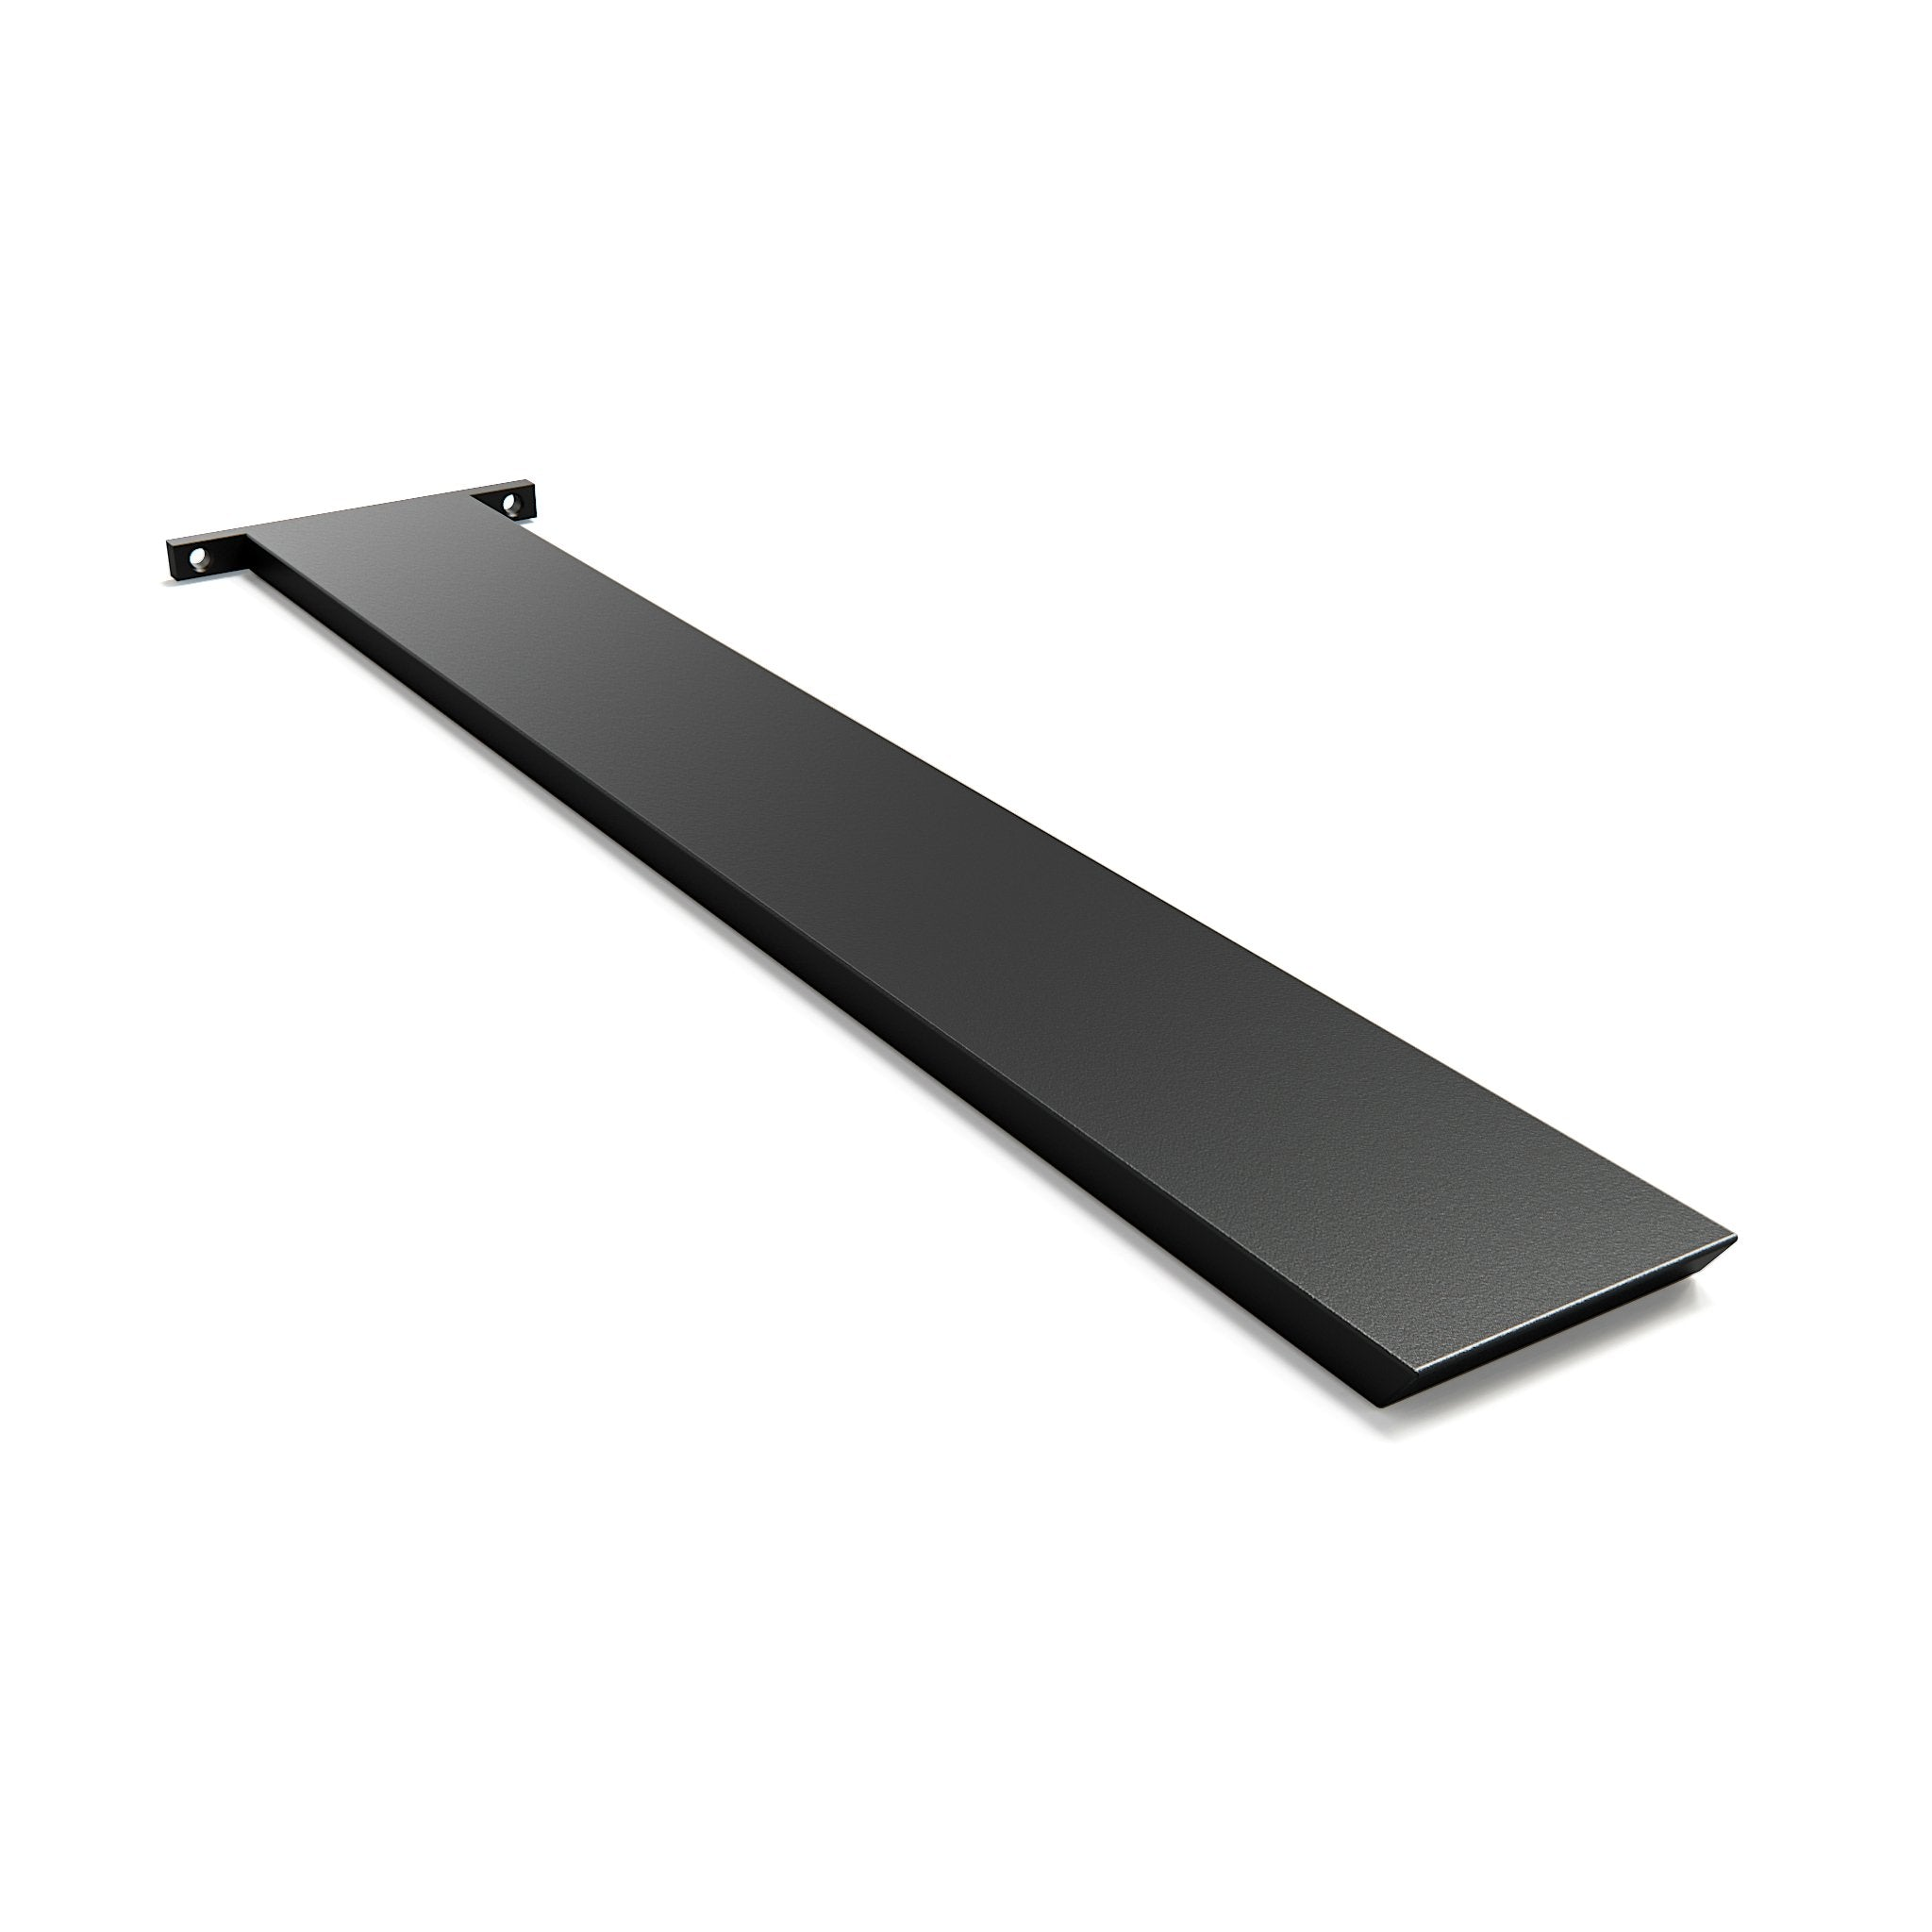 brackets crafted countertop knowledgable bracket content expertly black support linocln design